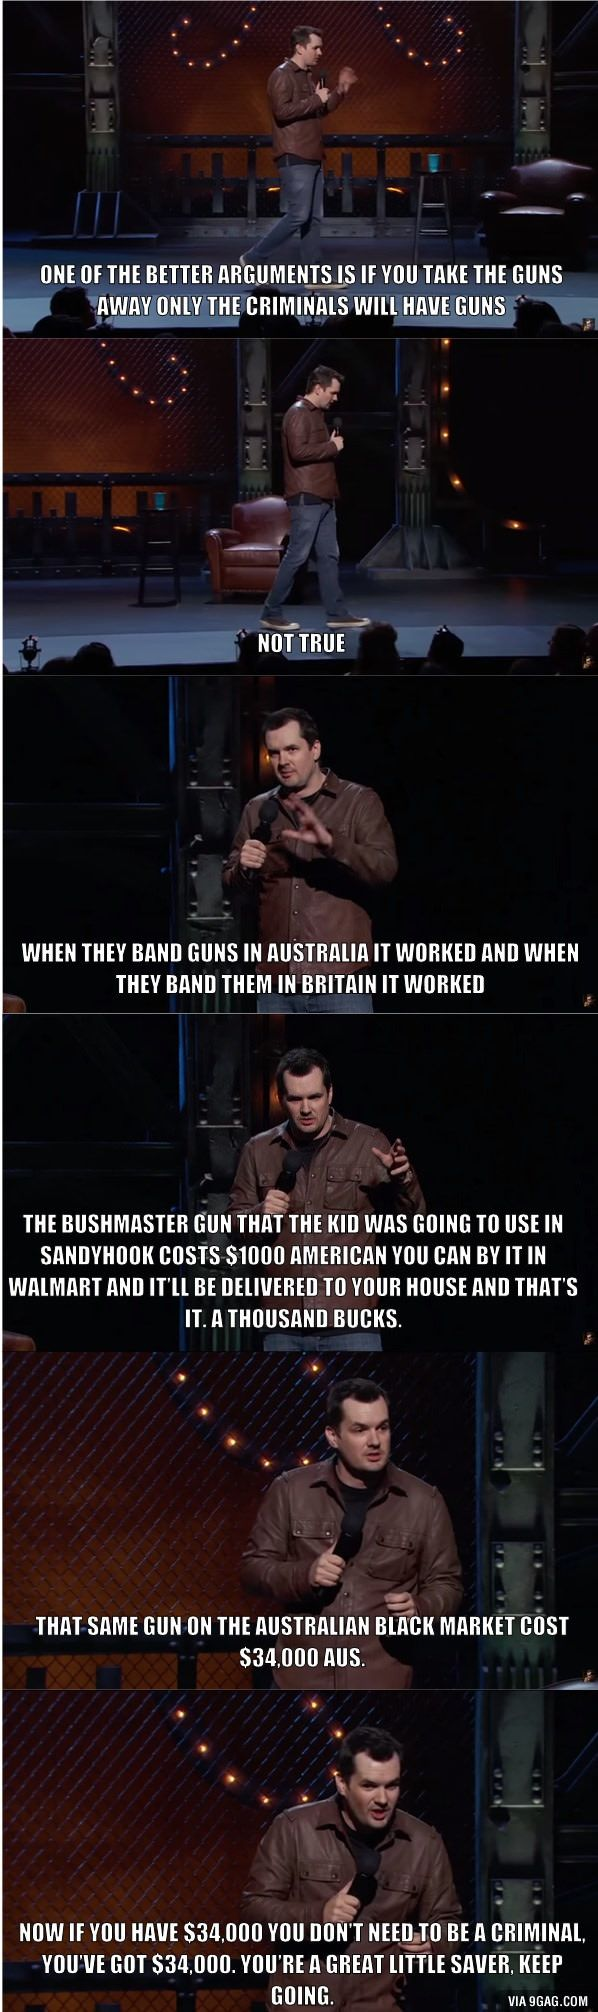 Jim Jefferies nails the gun control argument.